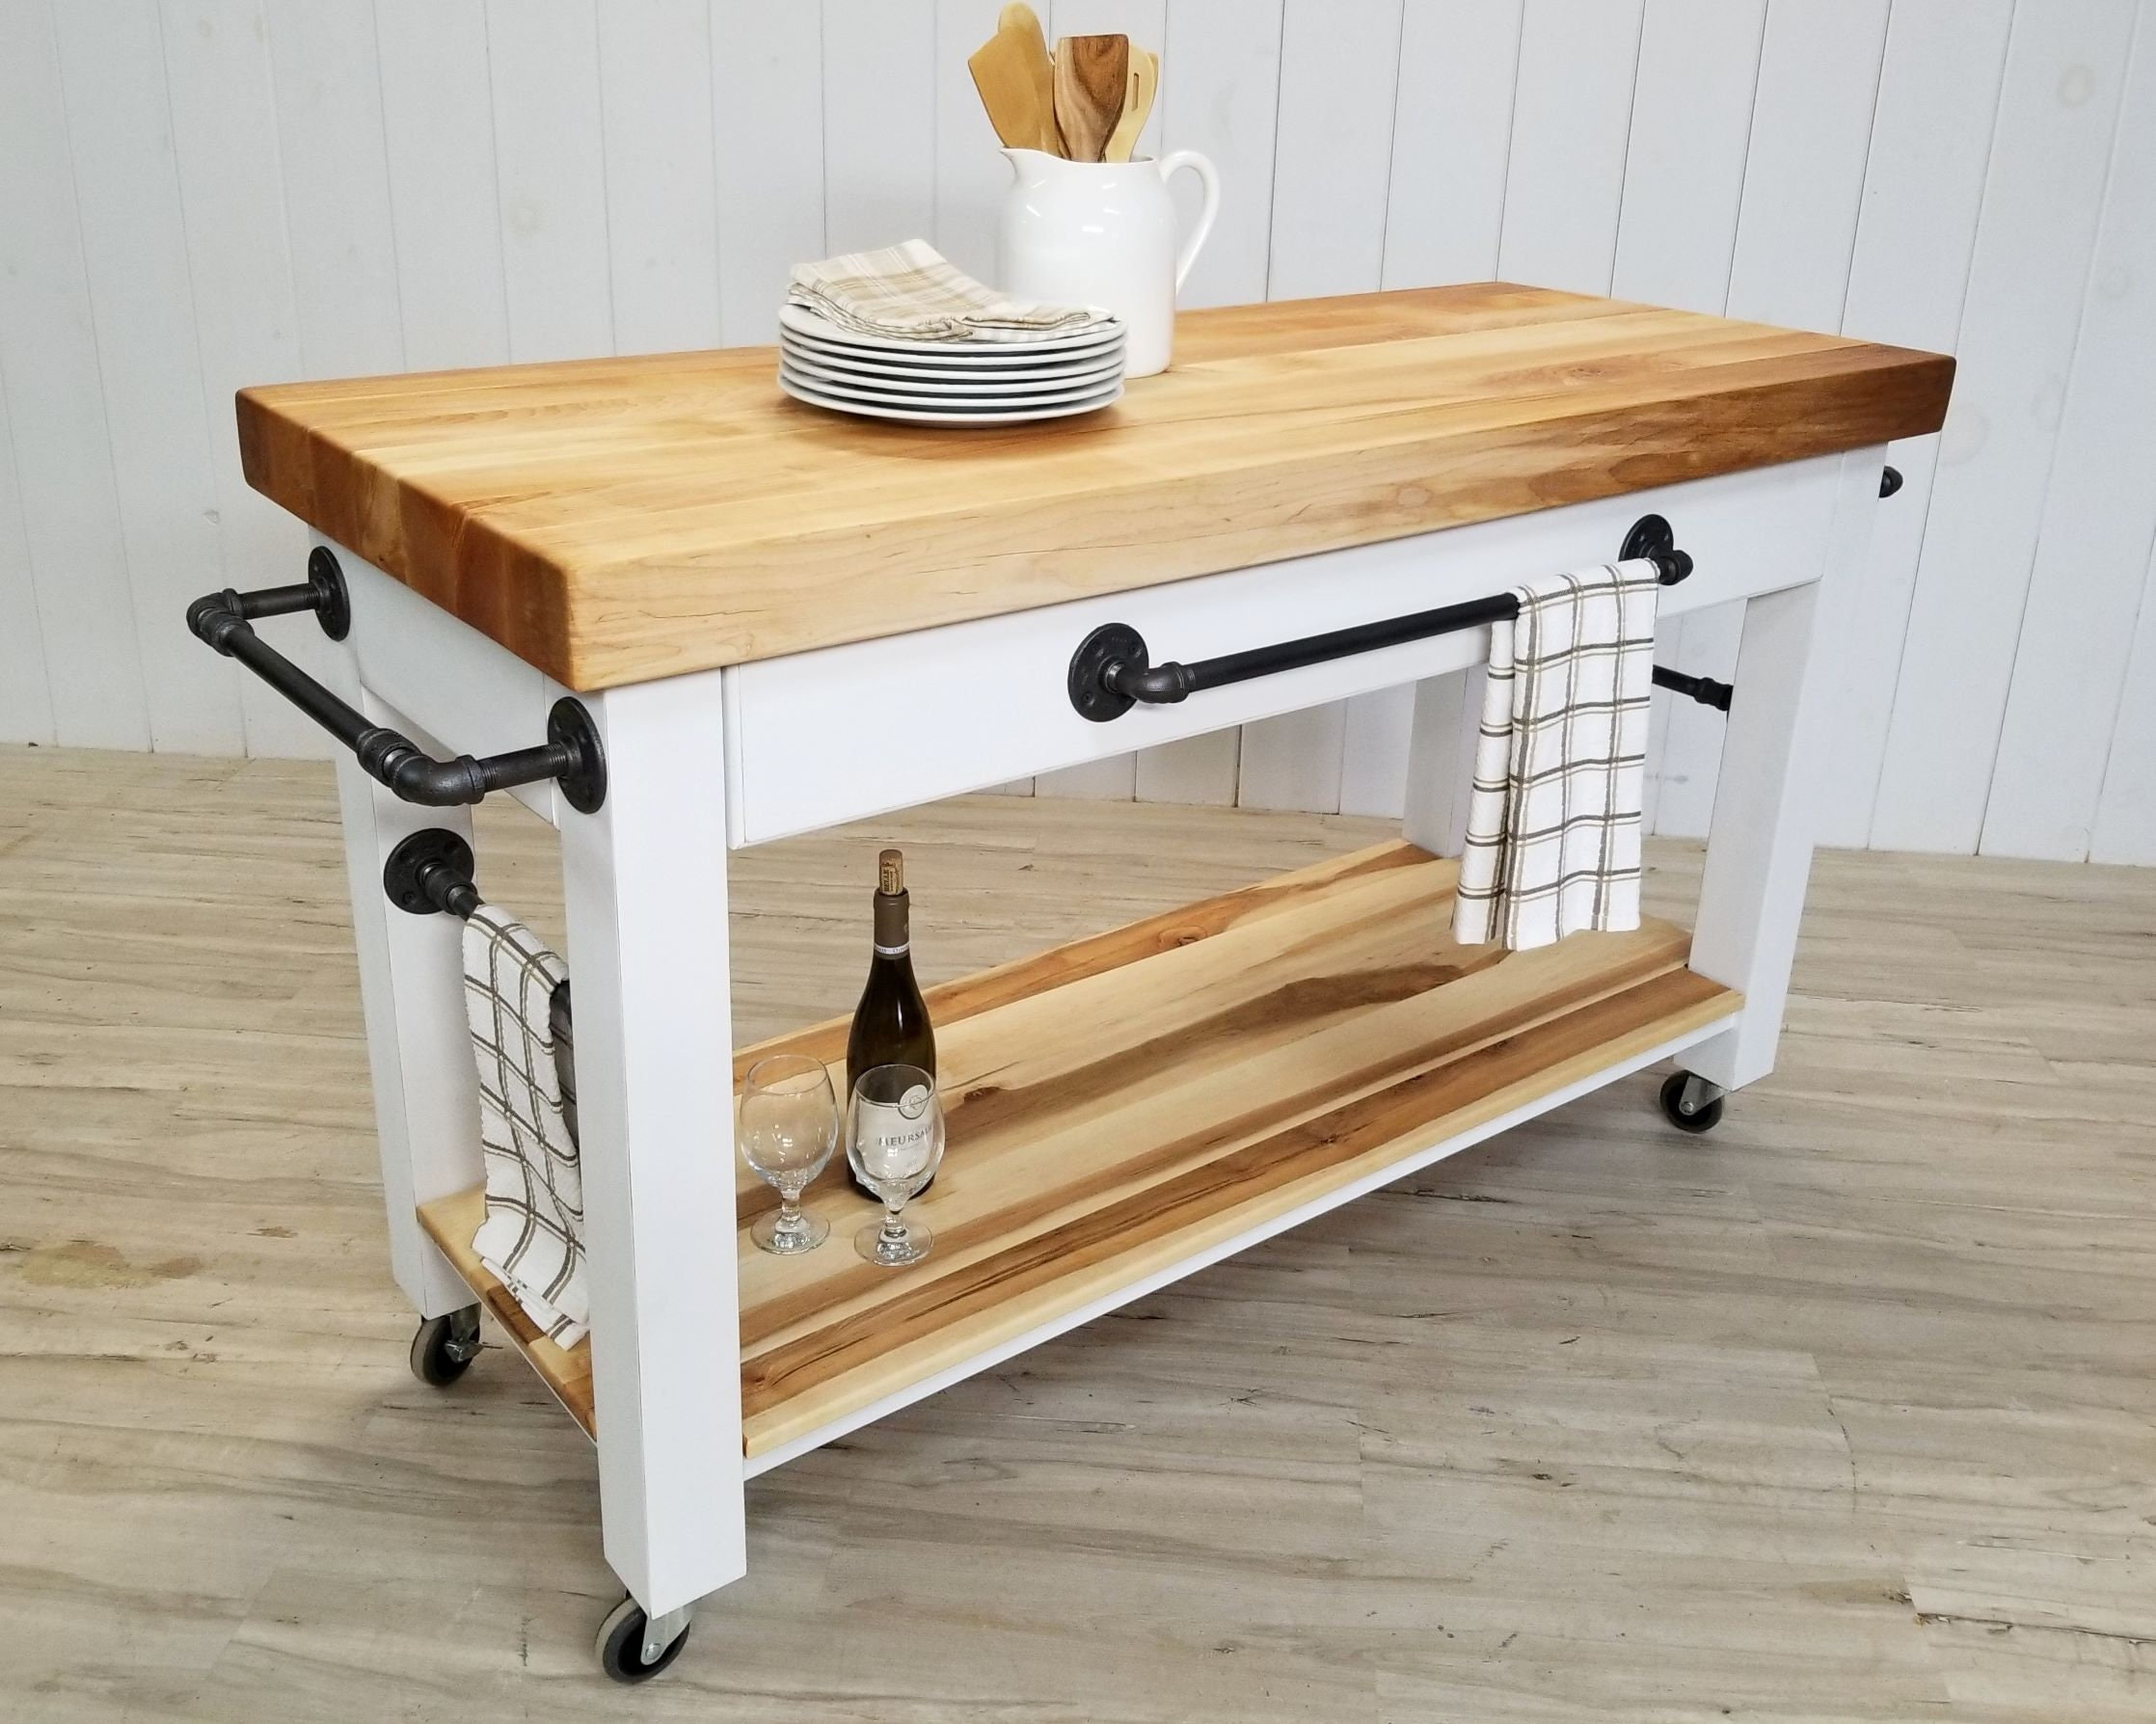 Maple Butcher Block Island Cart With Storage Shelf Drawer Solid Wood Steel Pipes